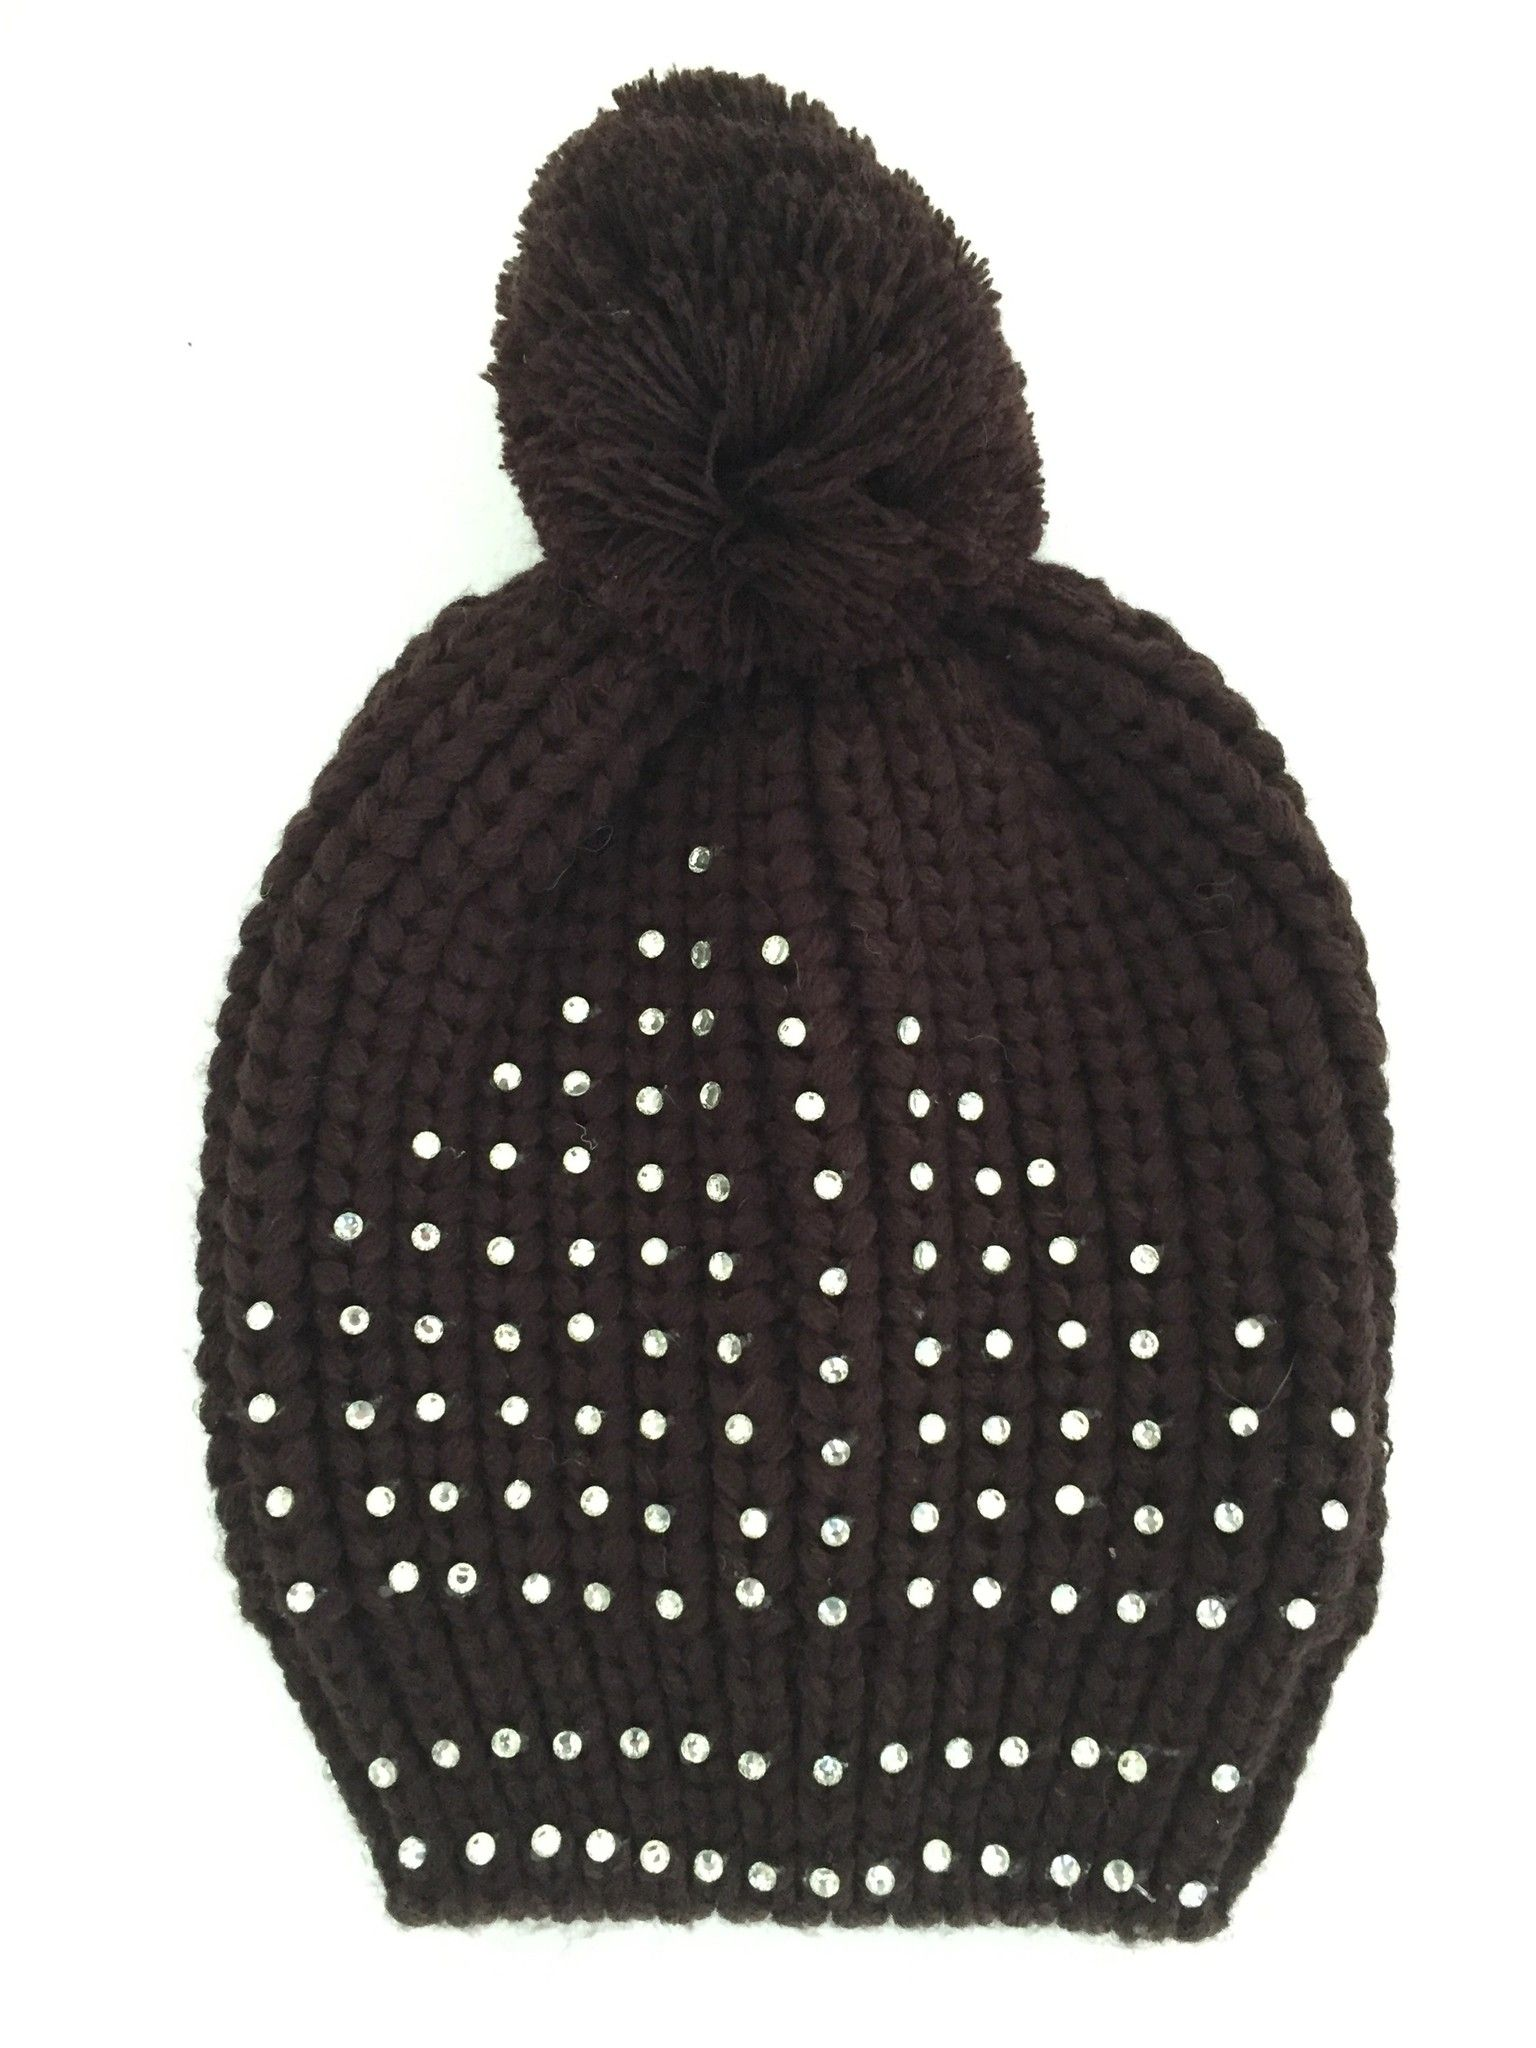 LadyBug Swarovski wool hat and pom poms Cod.0010